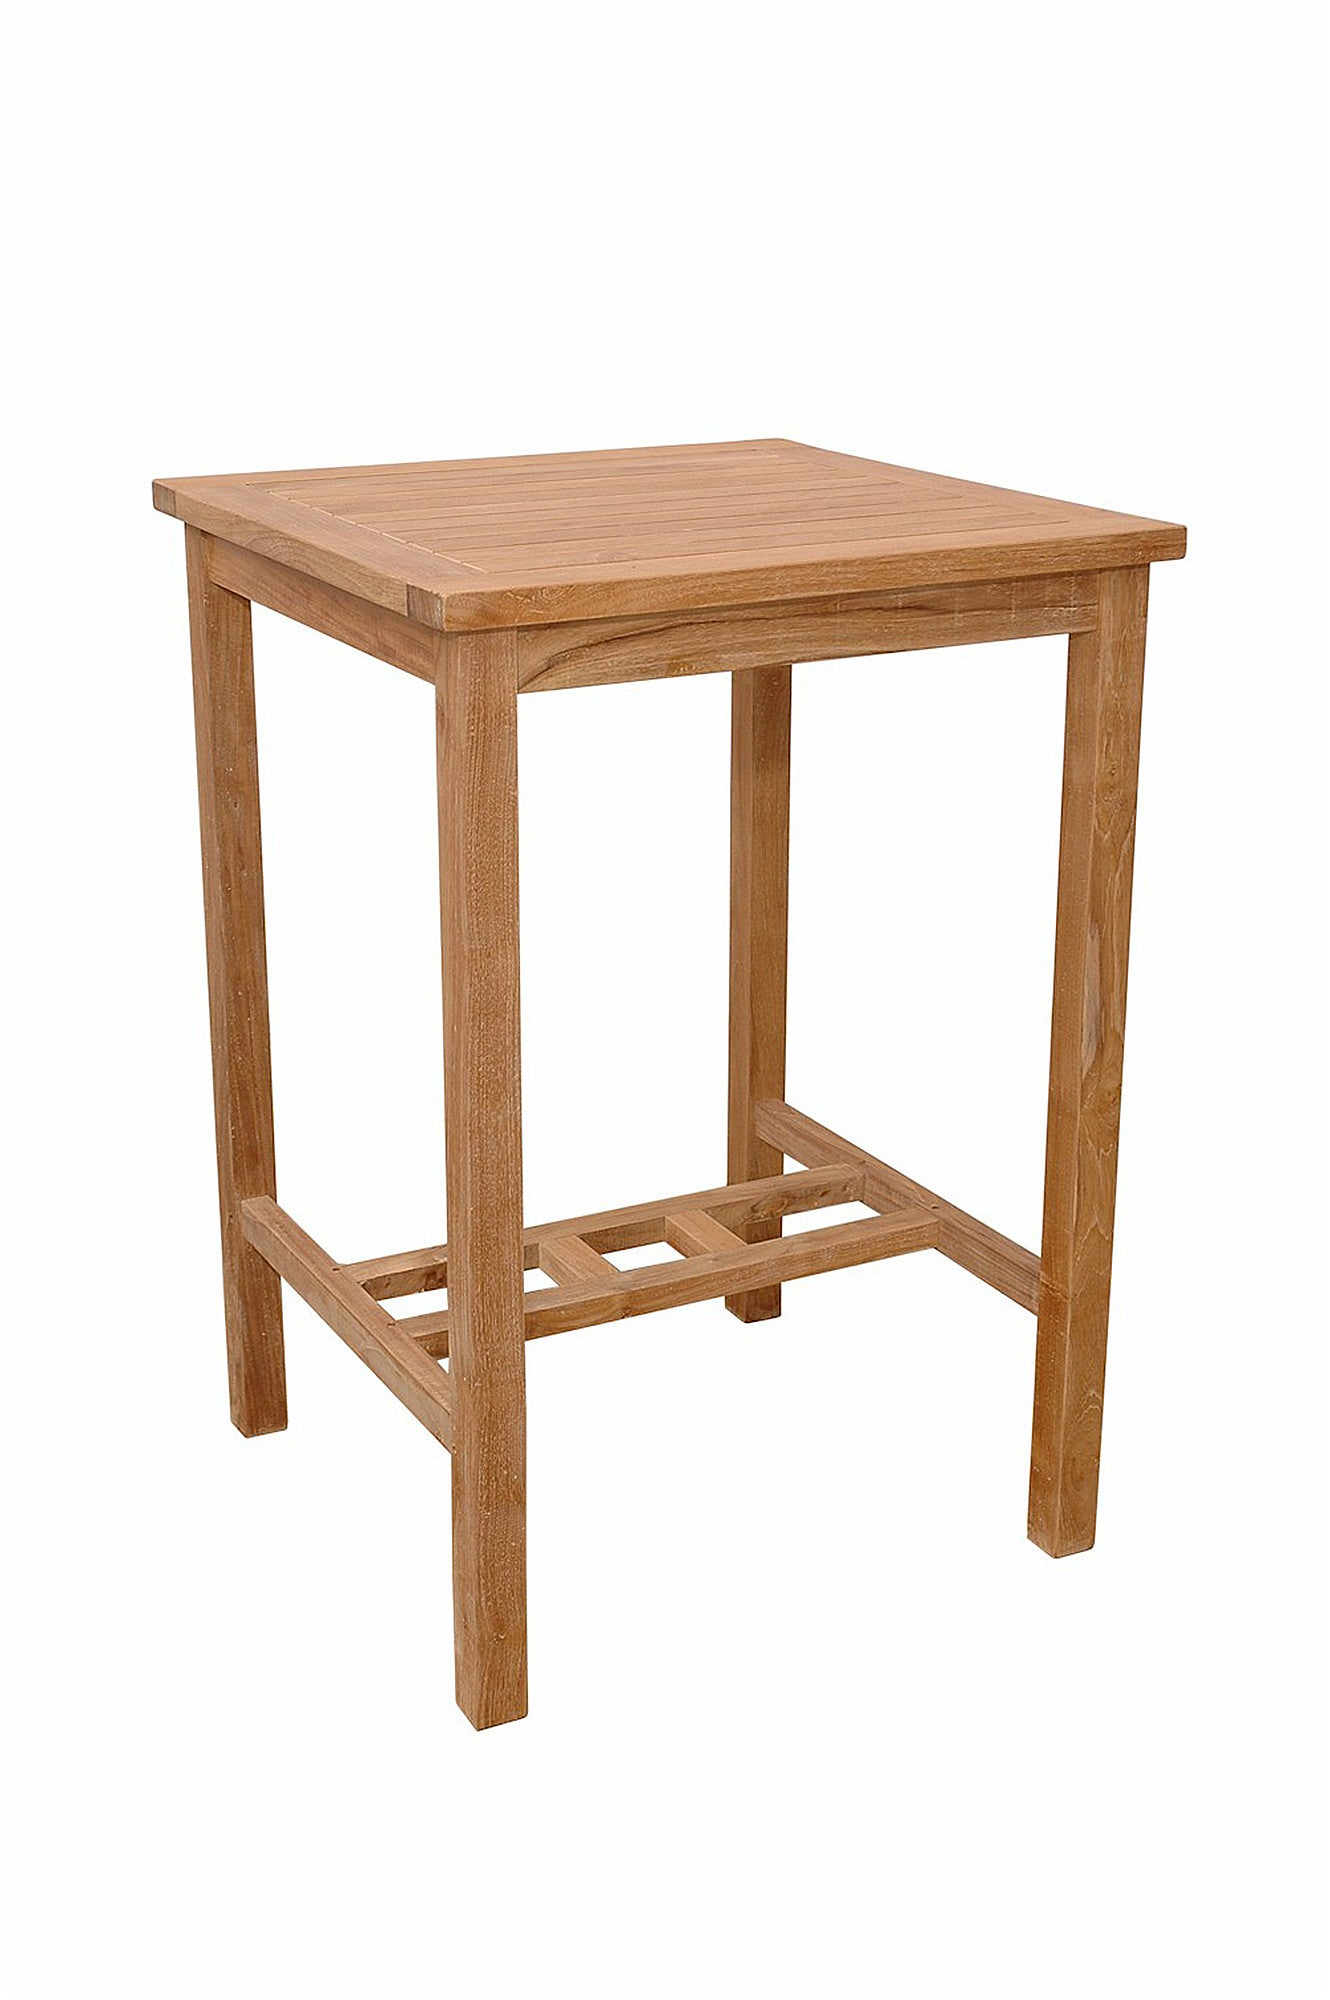 Anderson Collections Avalon 27 Inch Square Teak Bar Table